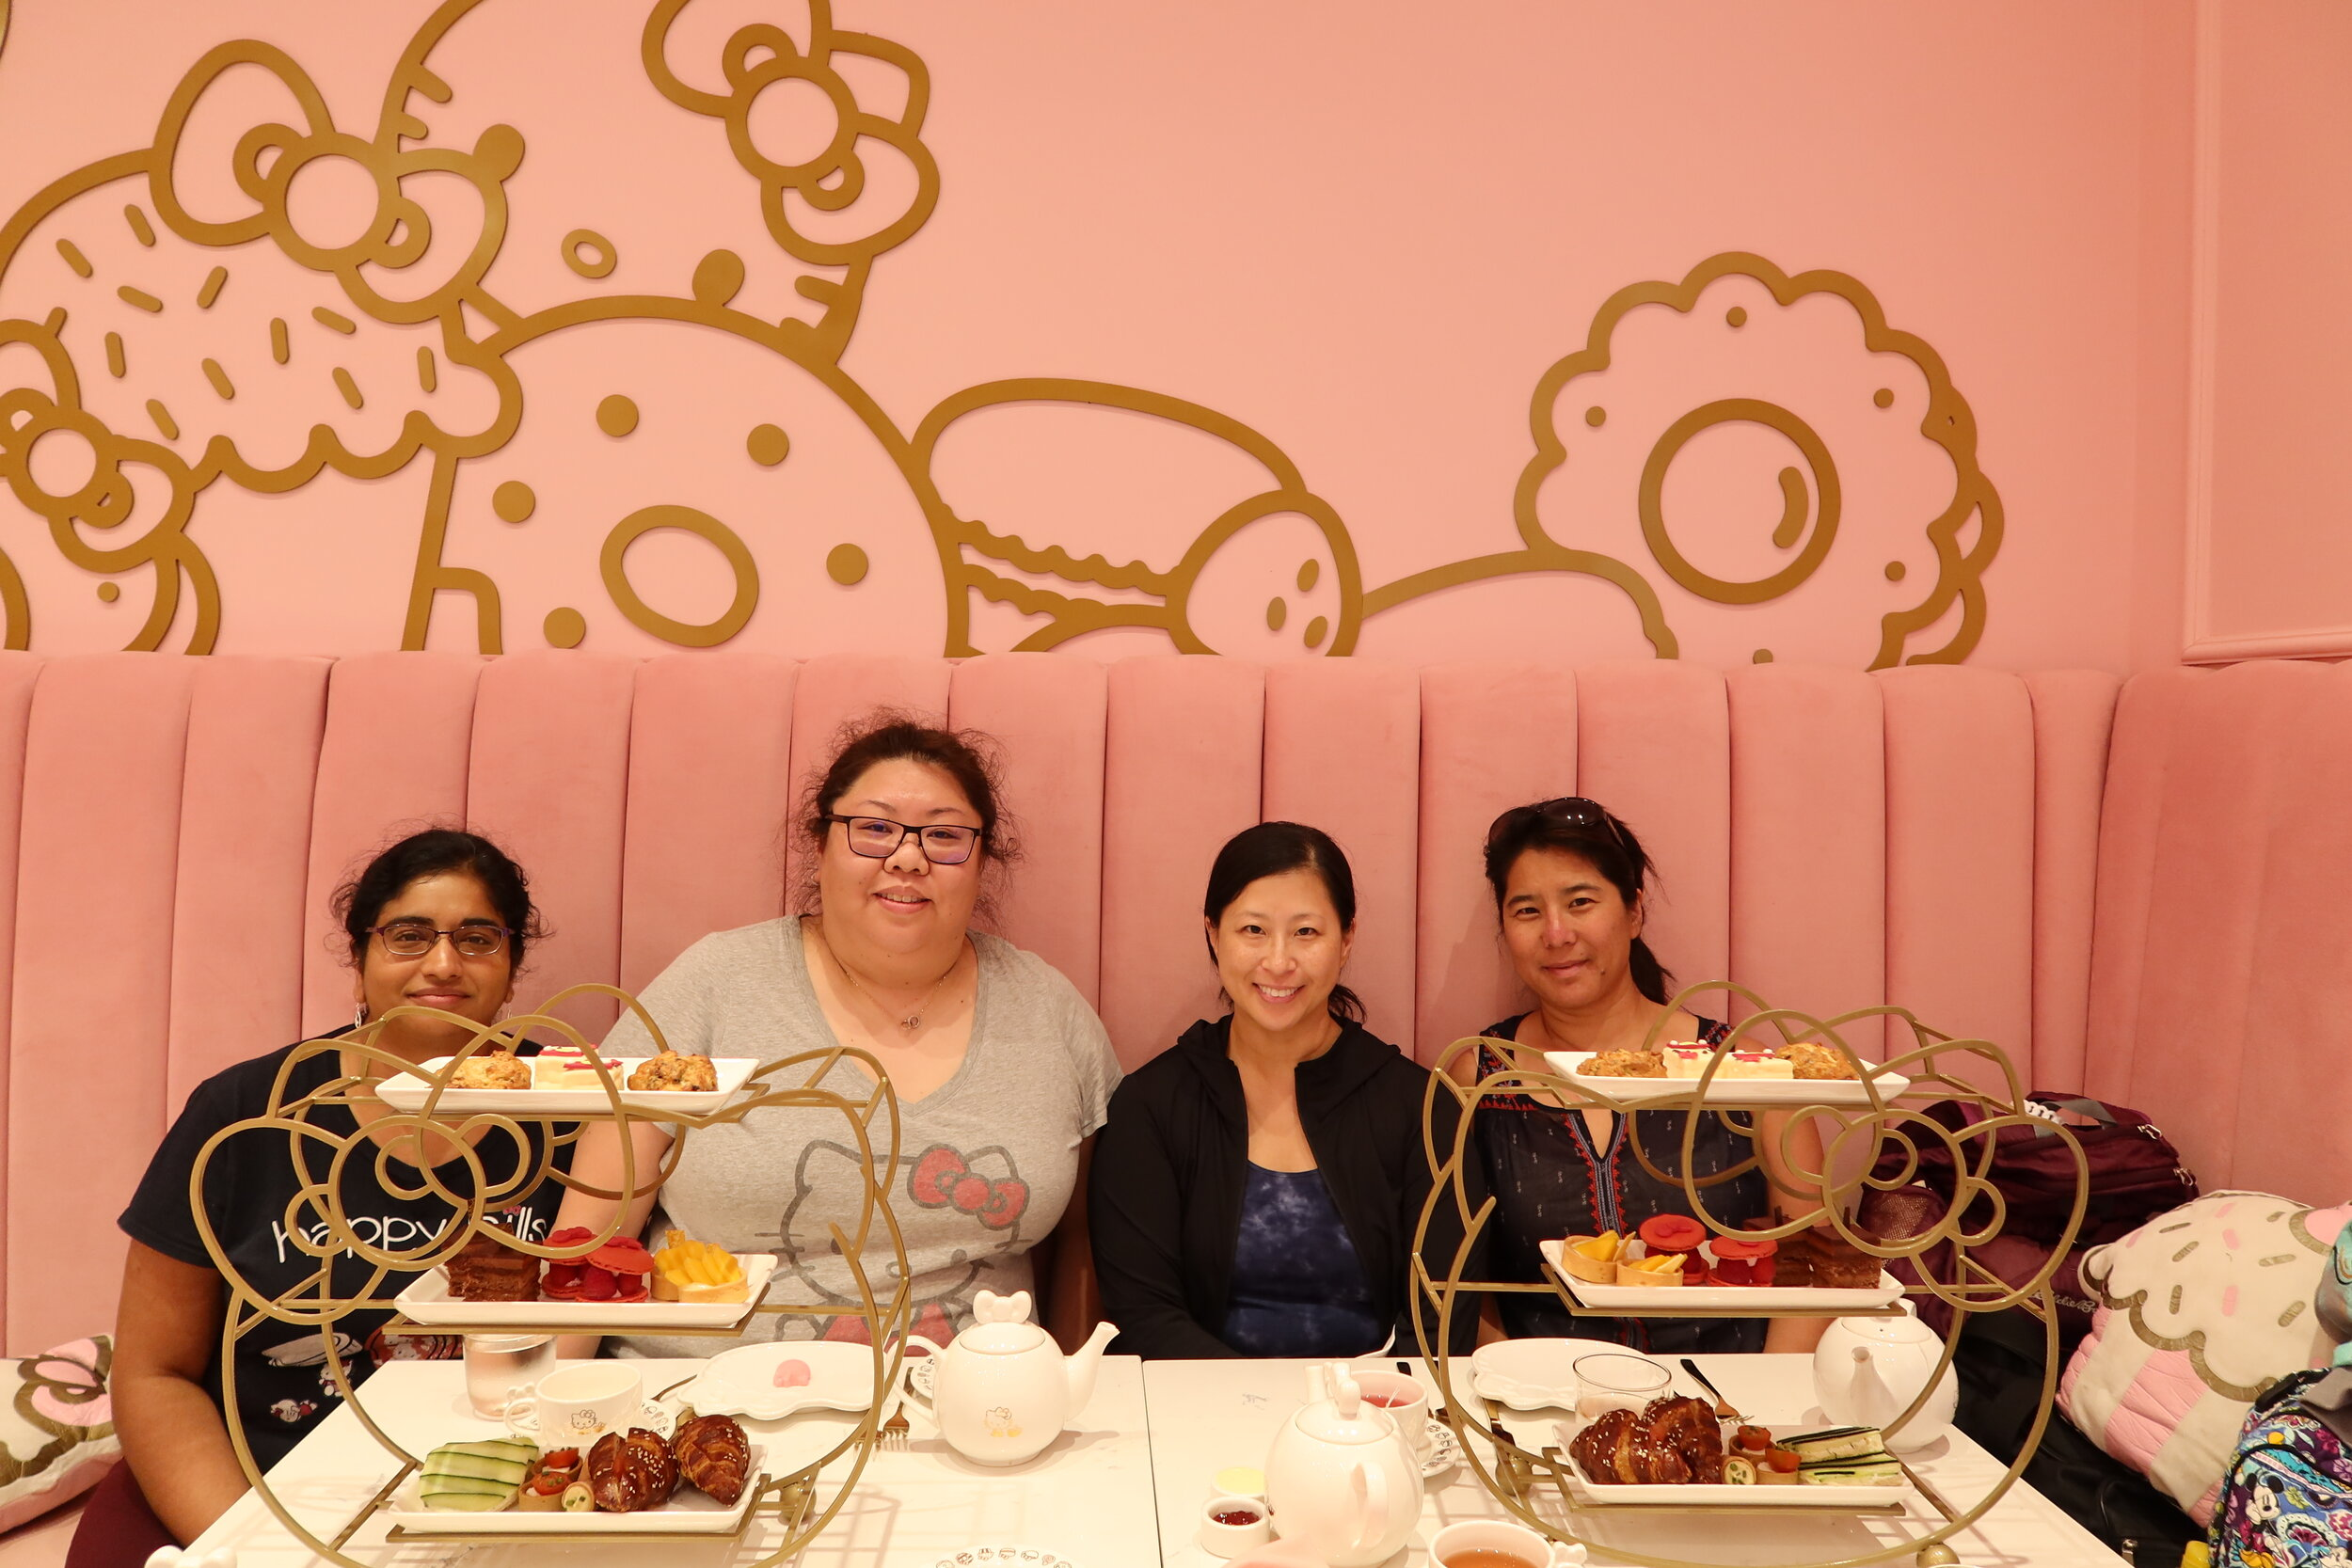 Hello KittyGrand CafeAfternoon Tea - We went to the Hello Kitty Grand Cafe in Irvine, CA. It's all in the details! Everything was adorable. Our friend Chanh even joined us from SF.